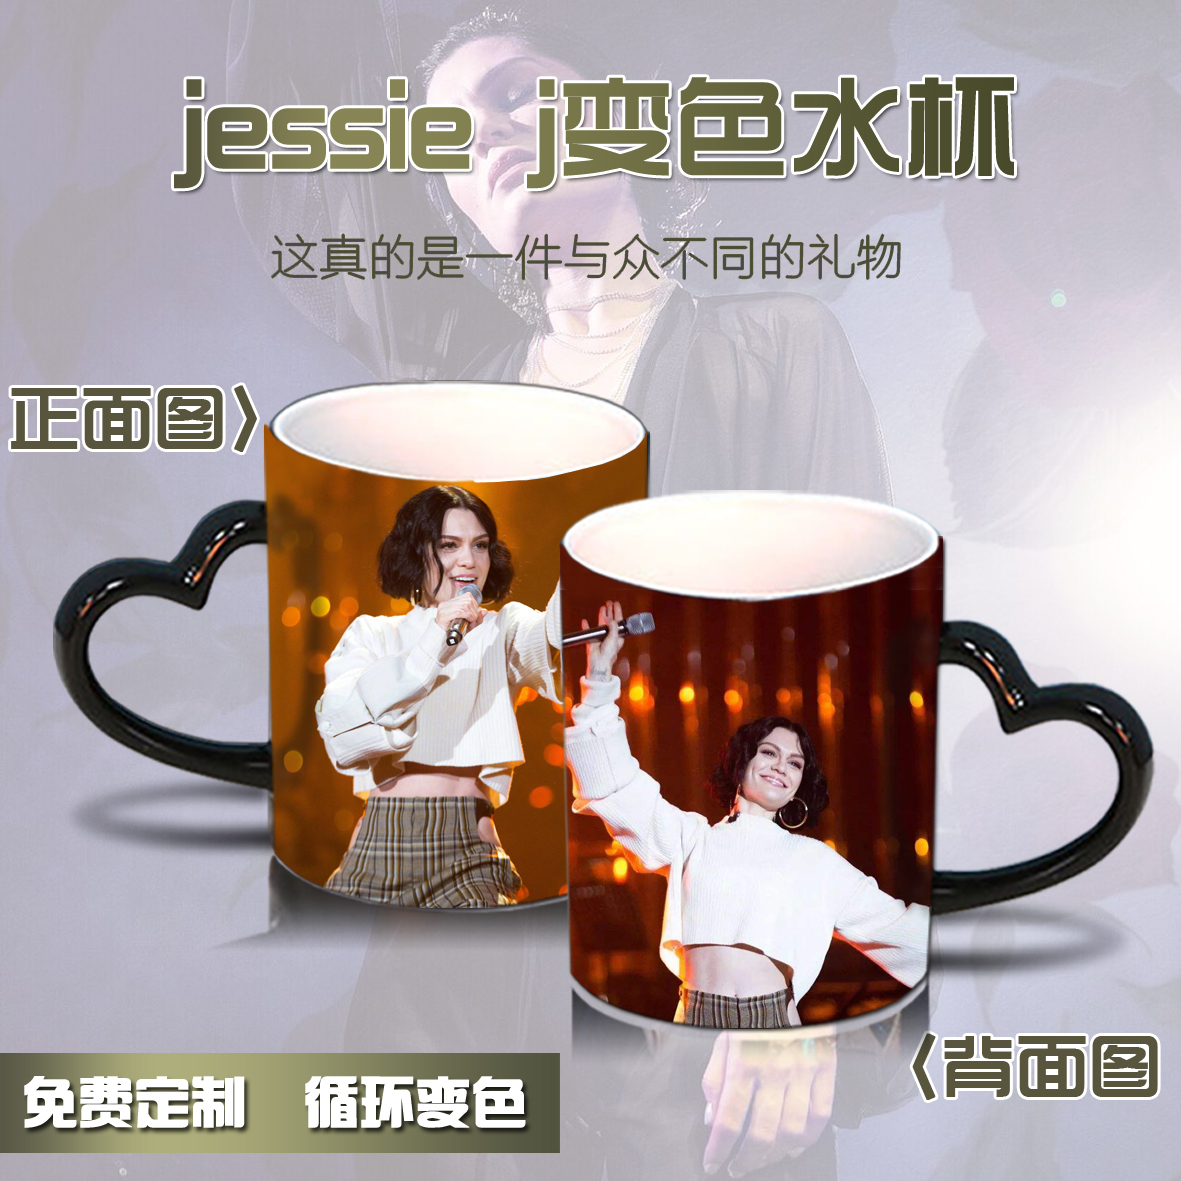 USD 1159 I Am The Singer Jessie J Stone Sister With Same